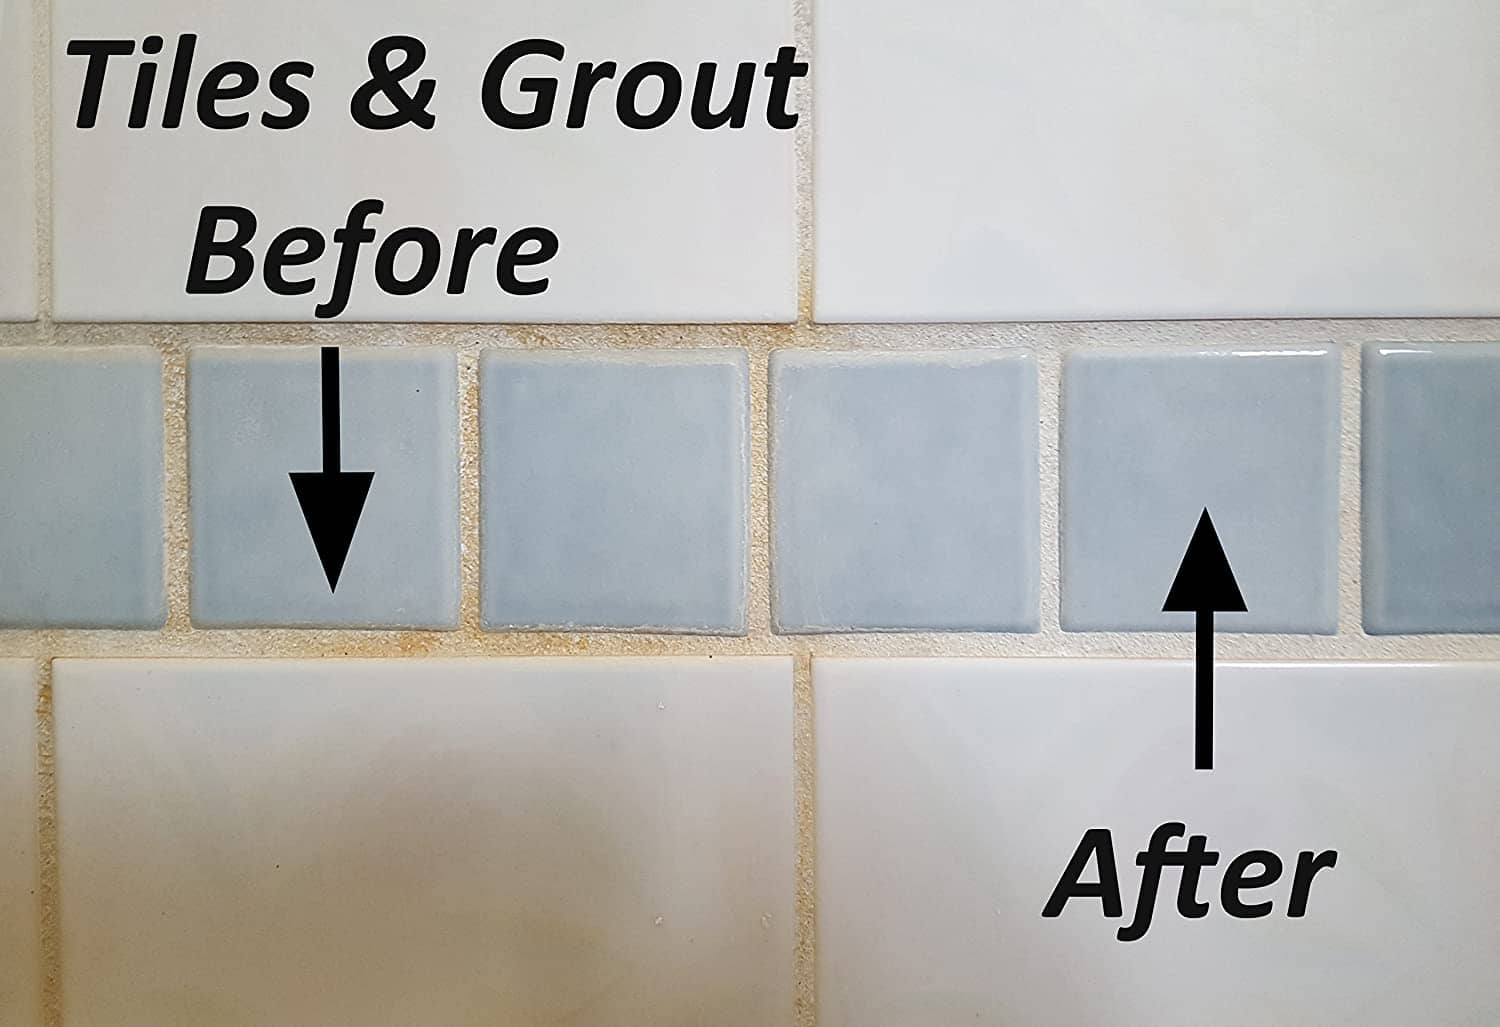 Tiles & Grout Before after